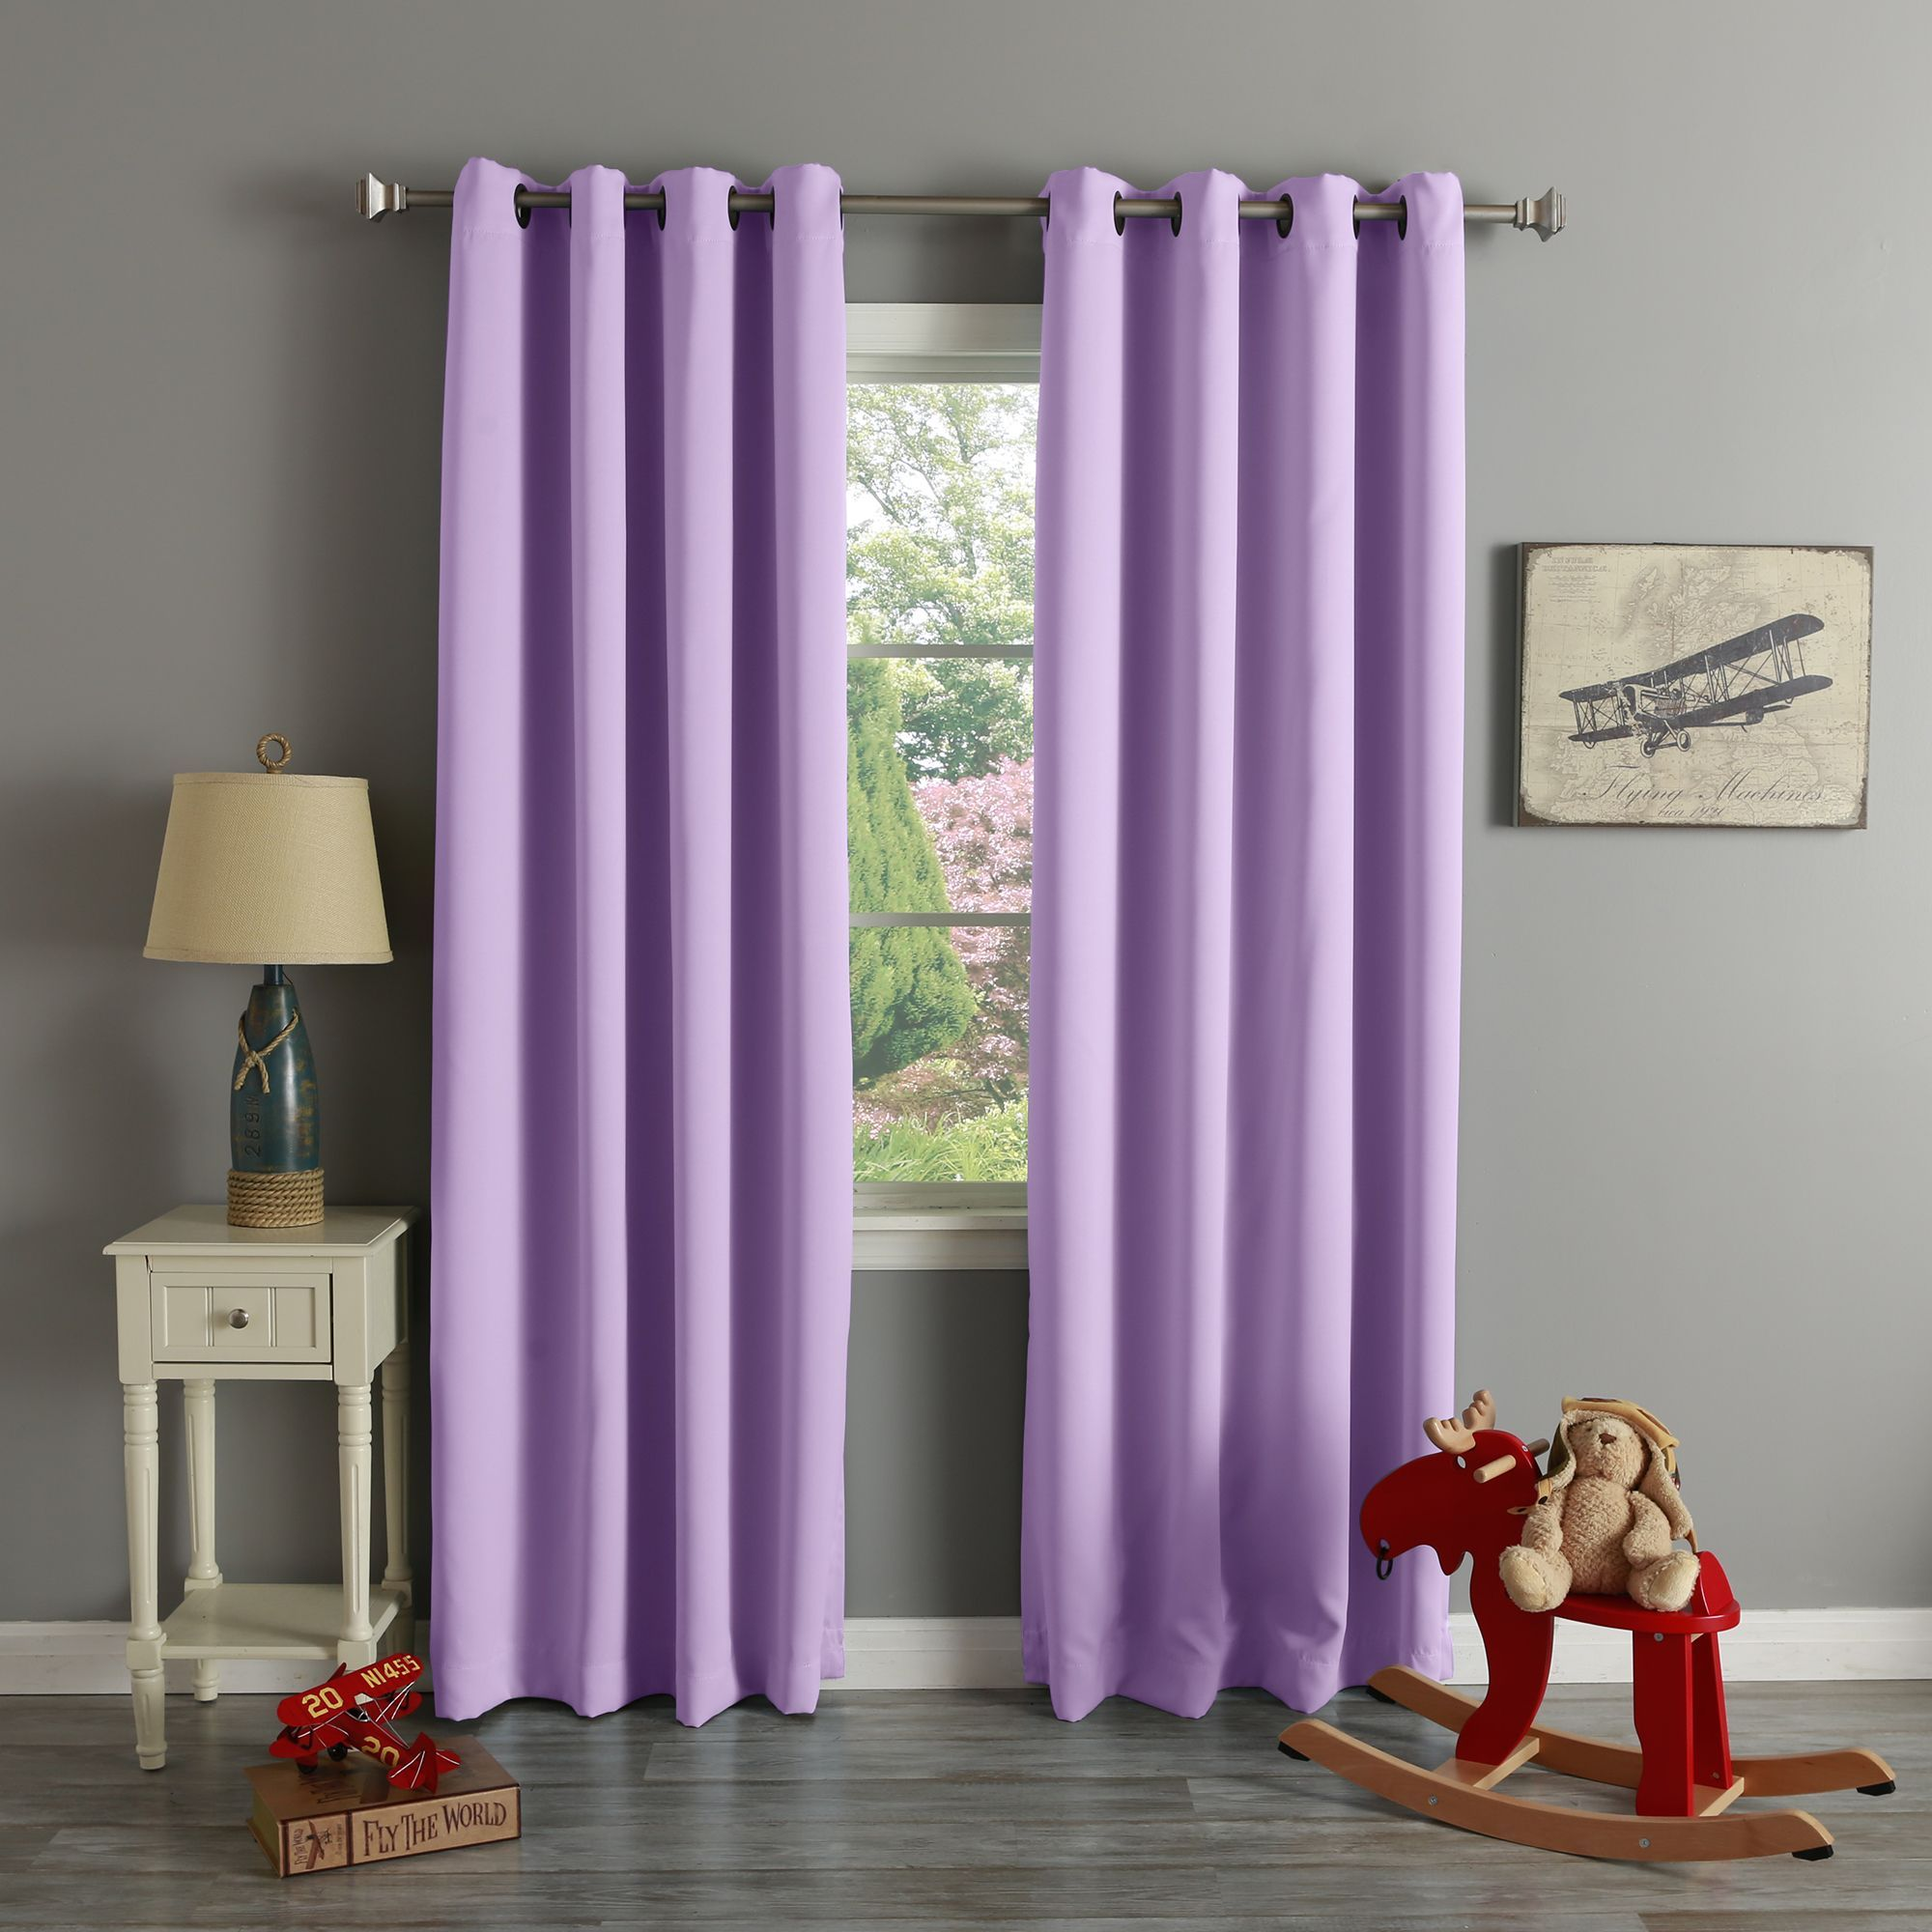 valances bedroom photo next or amazon grey size for inspirations bathroom curtains full hydrangea plum curtain walmart purple of magnificent mauve and drapes